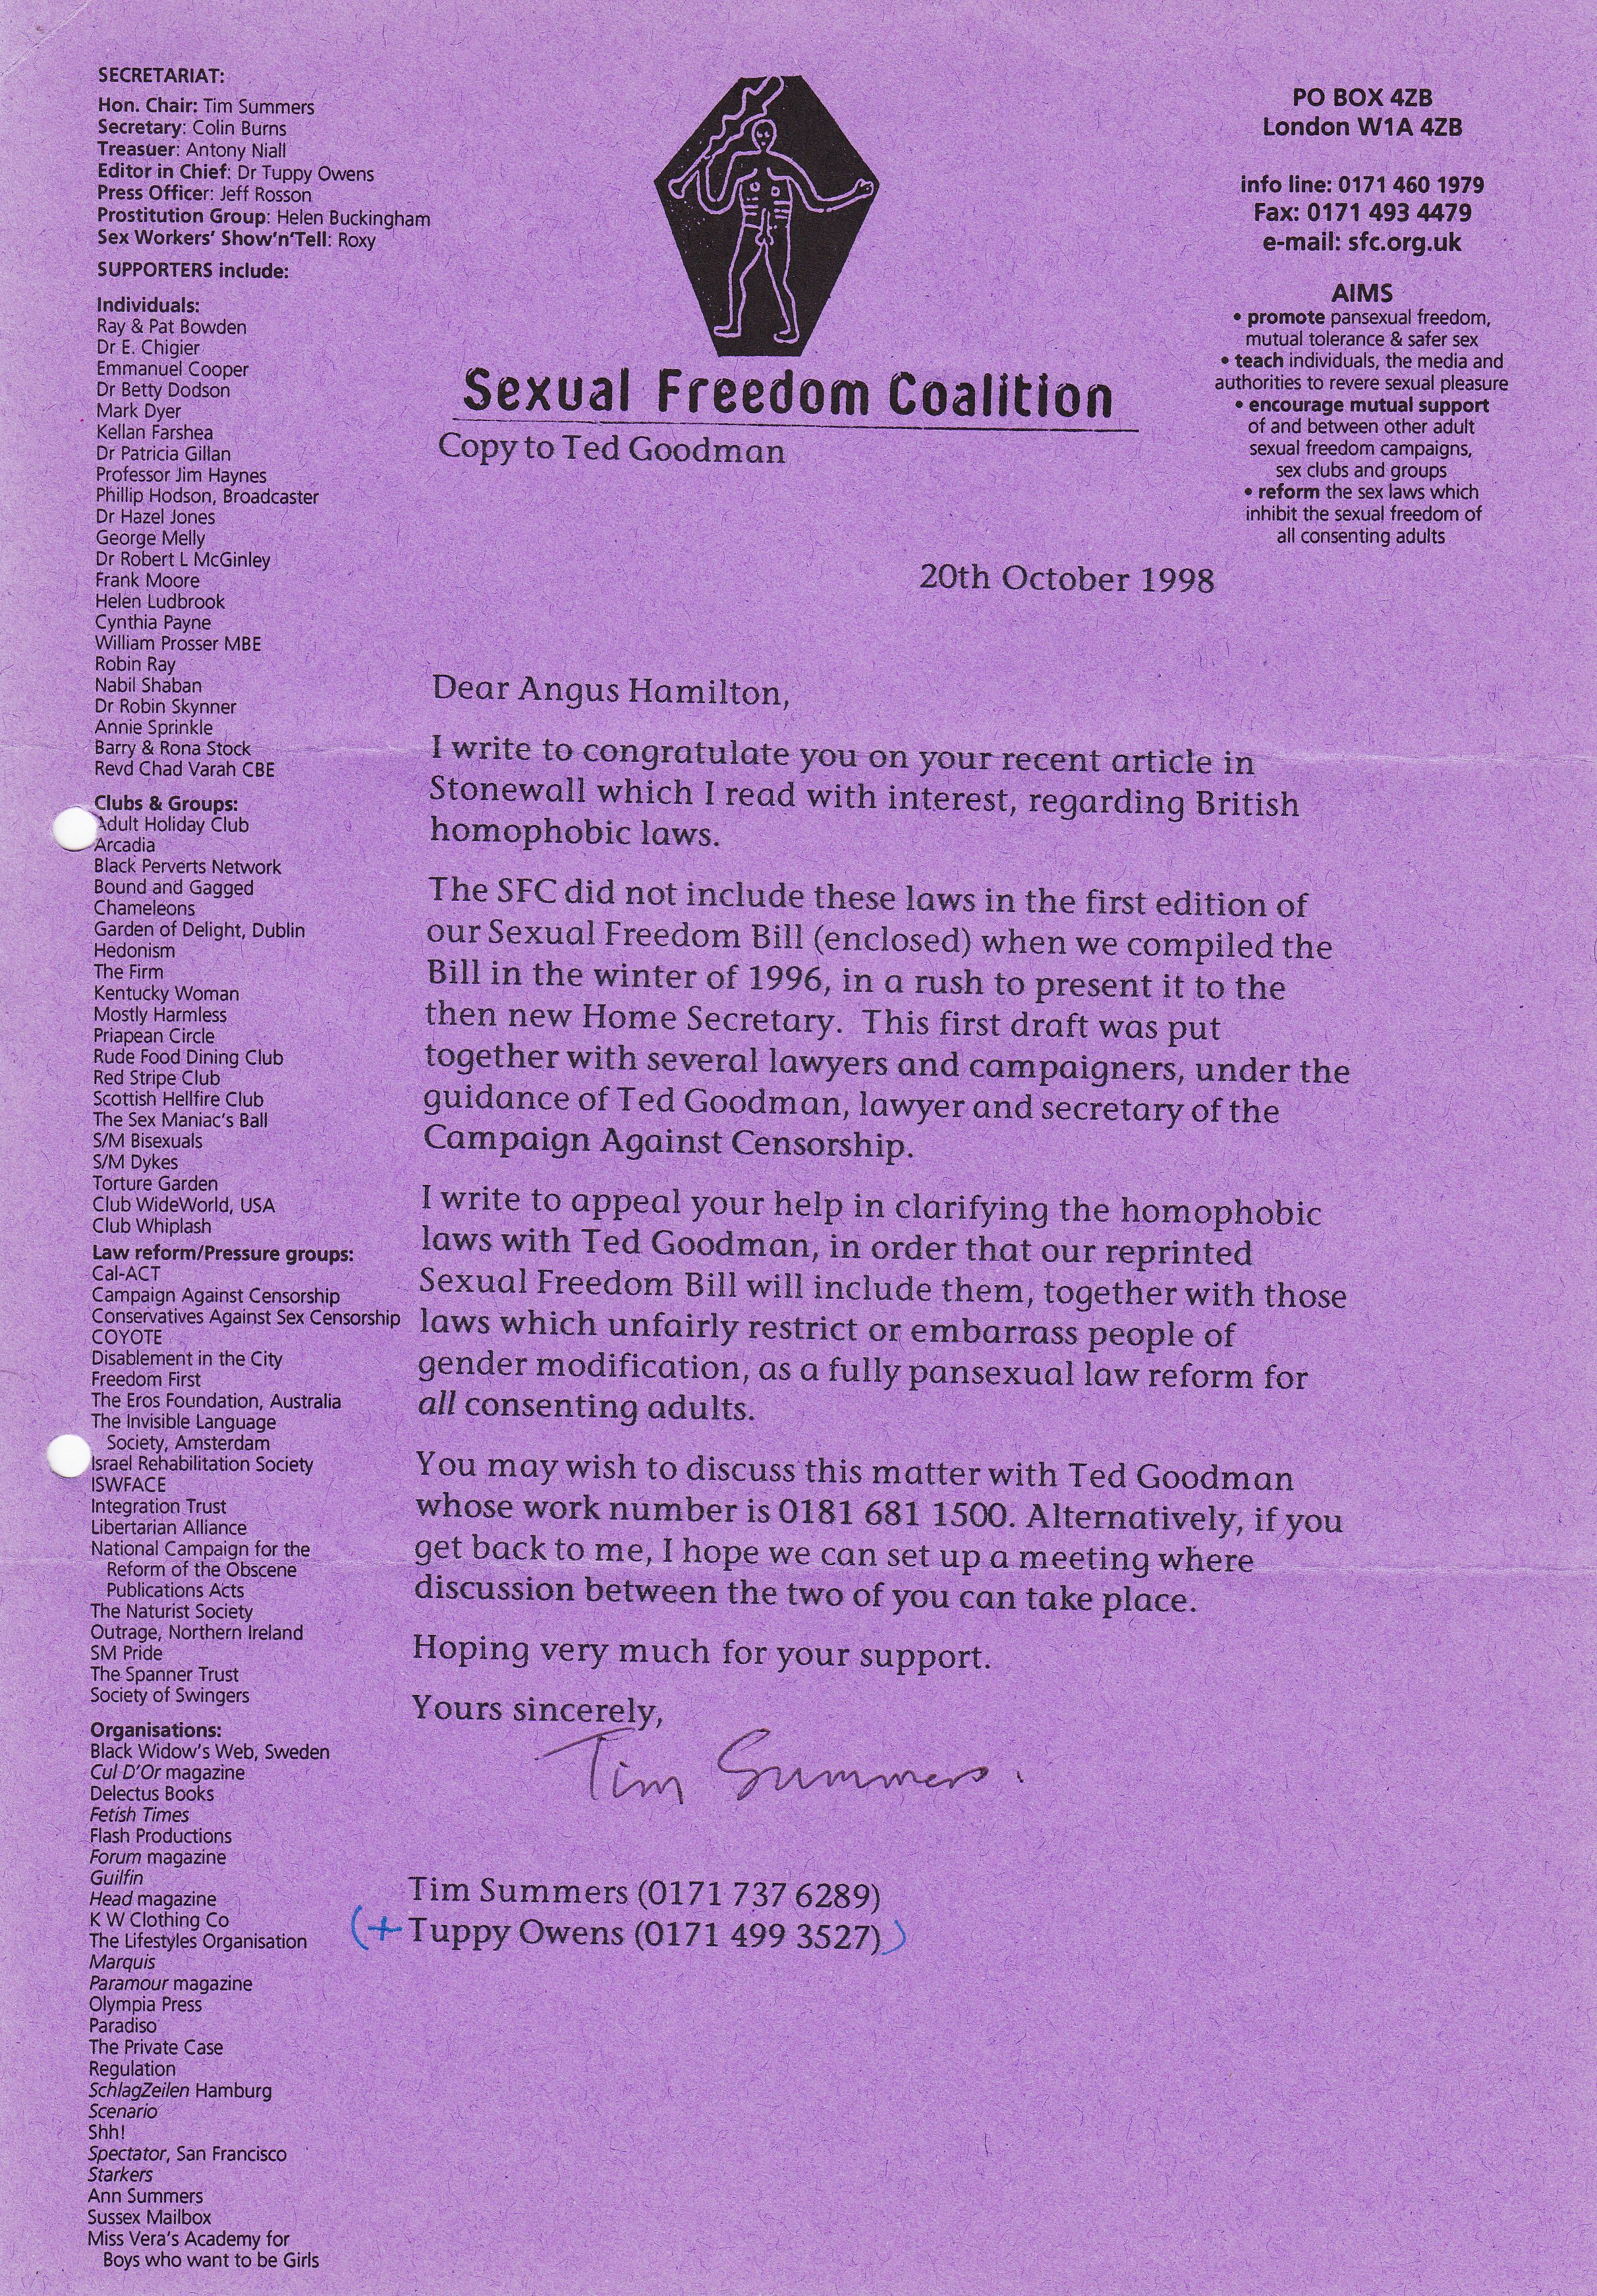 111 copy letter tuppy owens to ted goodman re petition to the home office october 28 1998 112 sexual freedom coalition folded leaflet circa november